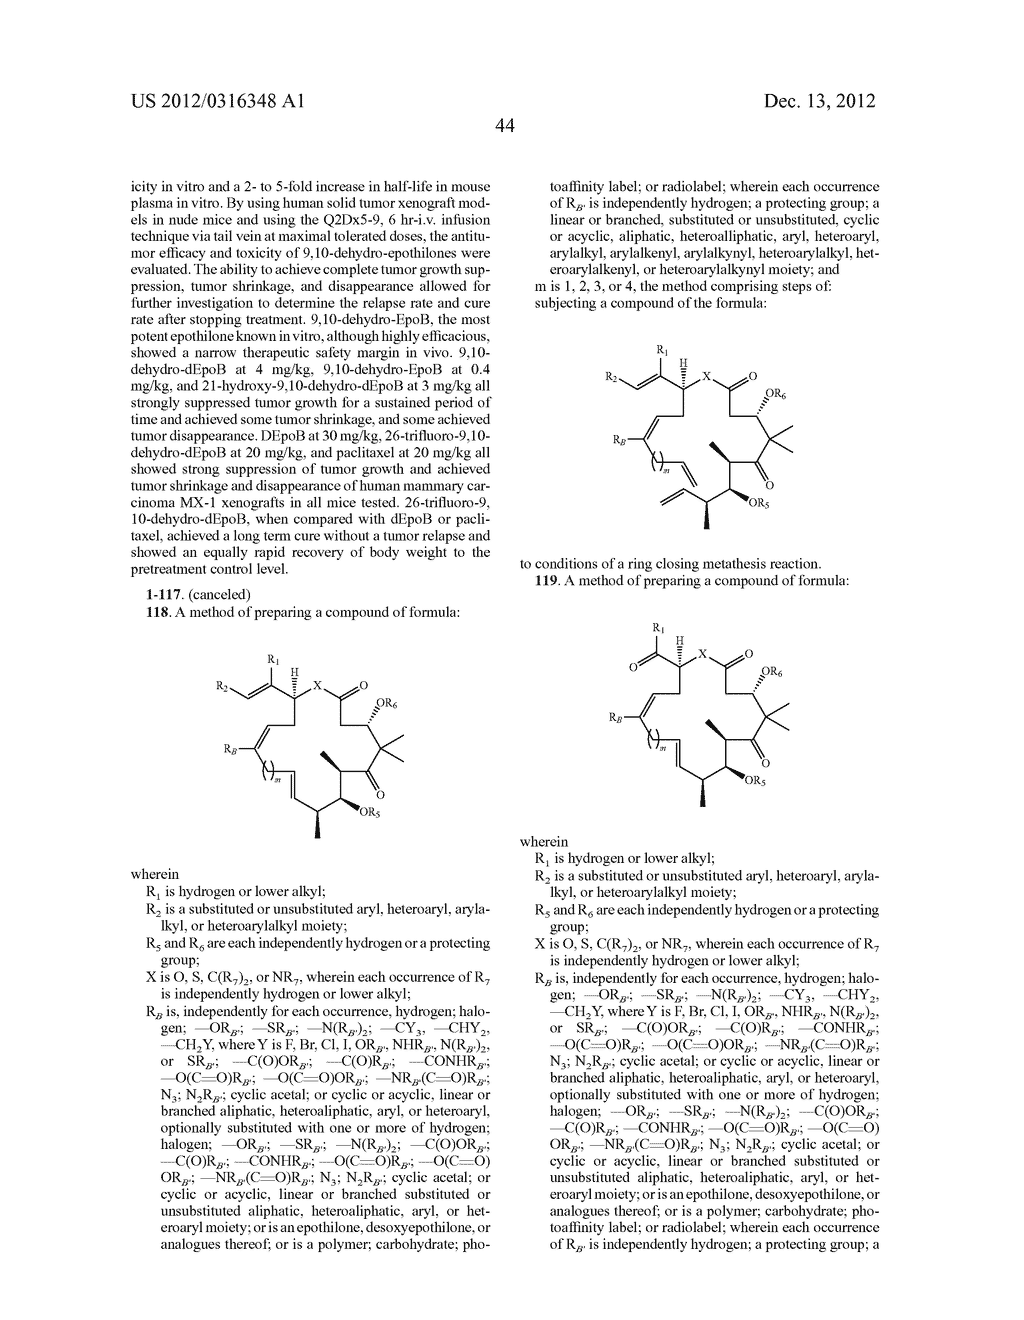 SYNTHESIS OF EPOTHILONES, INTERMEDIATES THERETO AND ANALOGUES THEREOF - diagram, schematic, and image 115